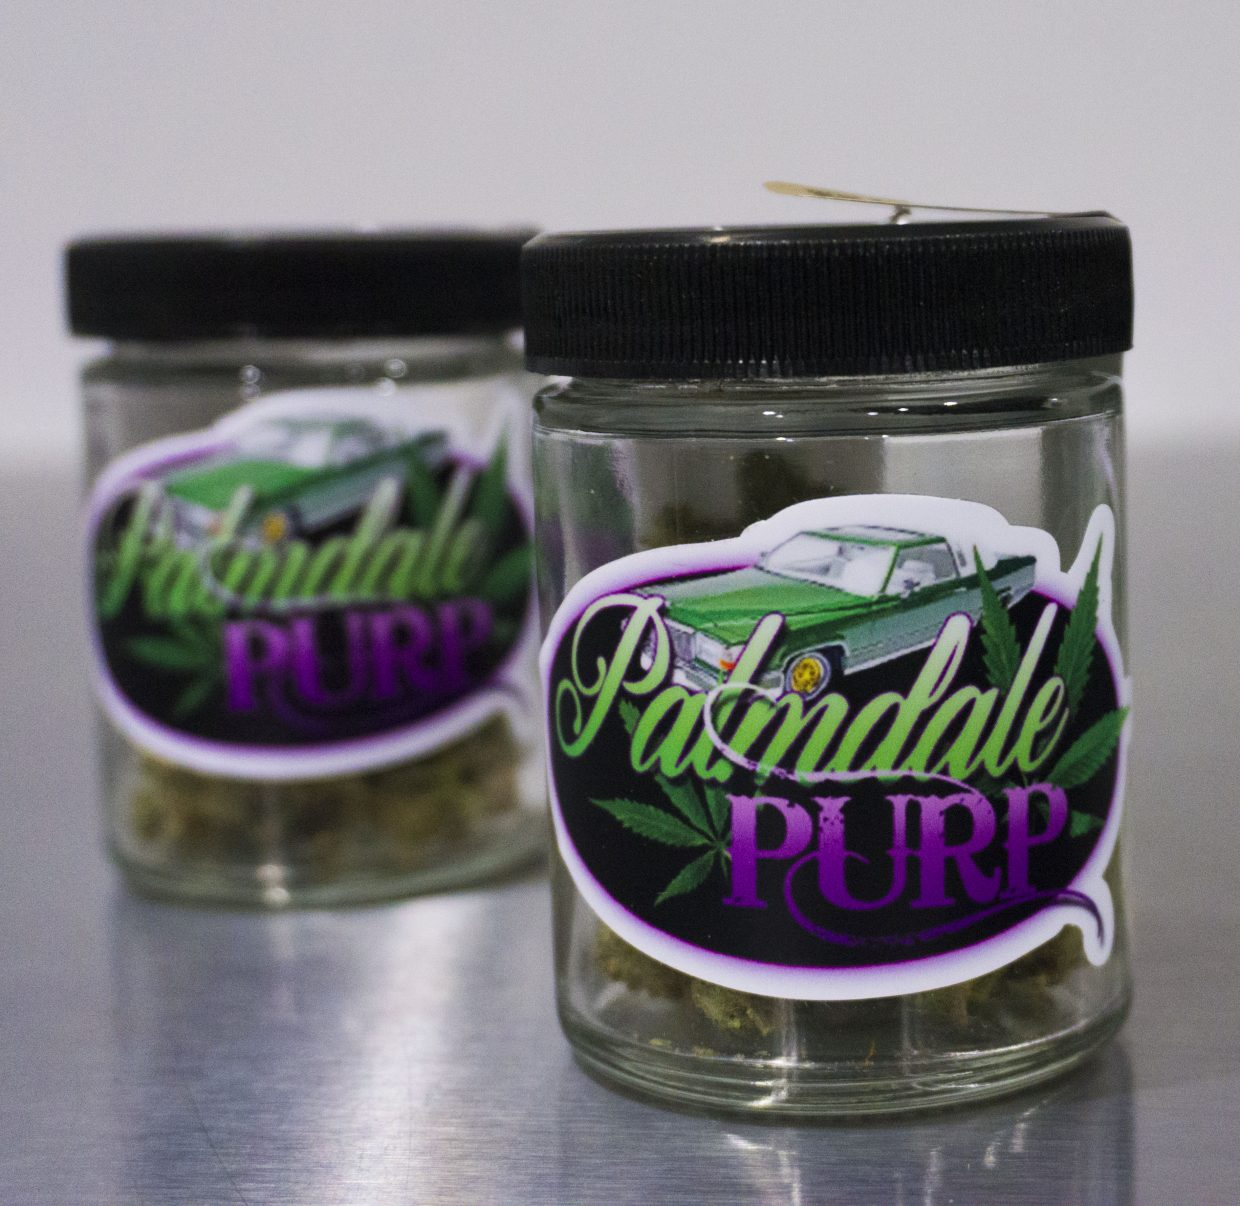 Afroman visited NuLeaf in Incline Village on Sept. 25 to launch his new cannabis strain Palmdale Purp.